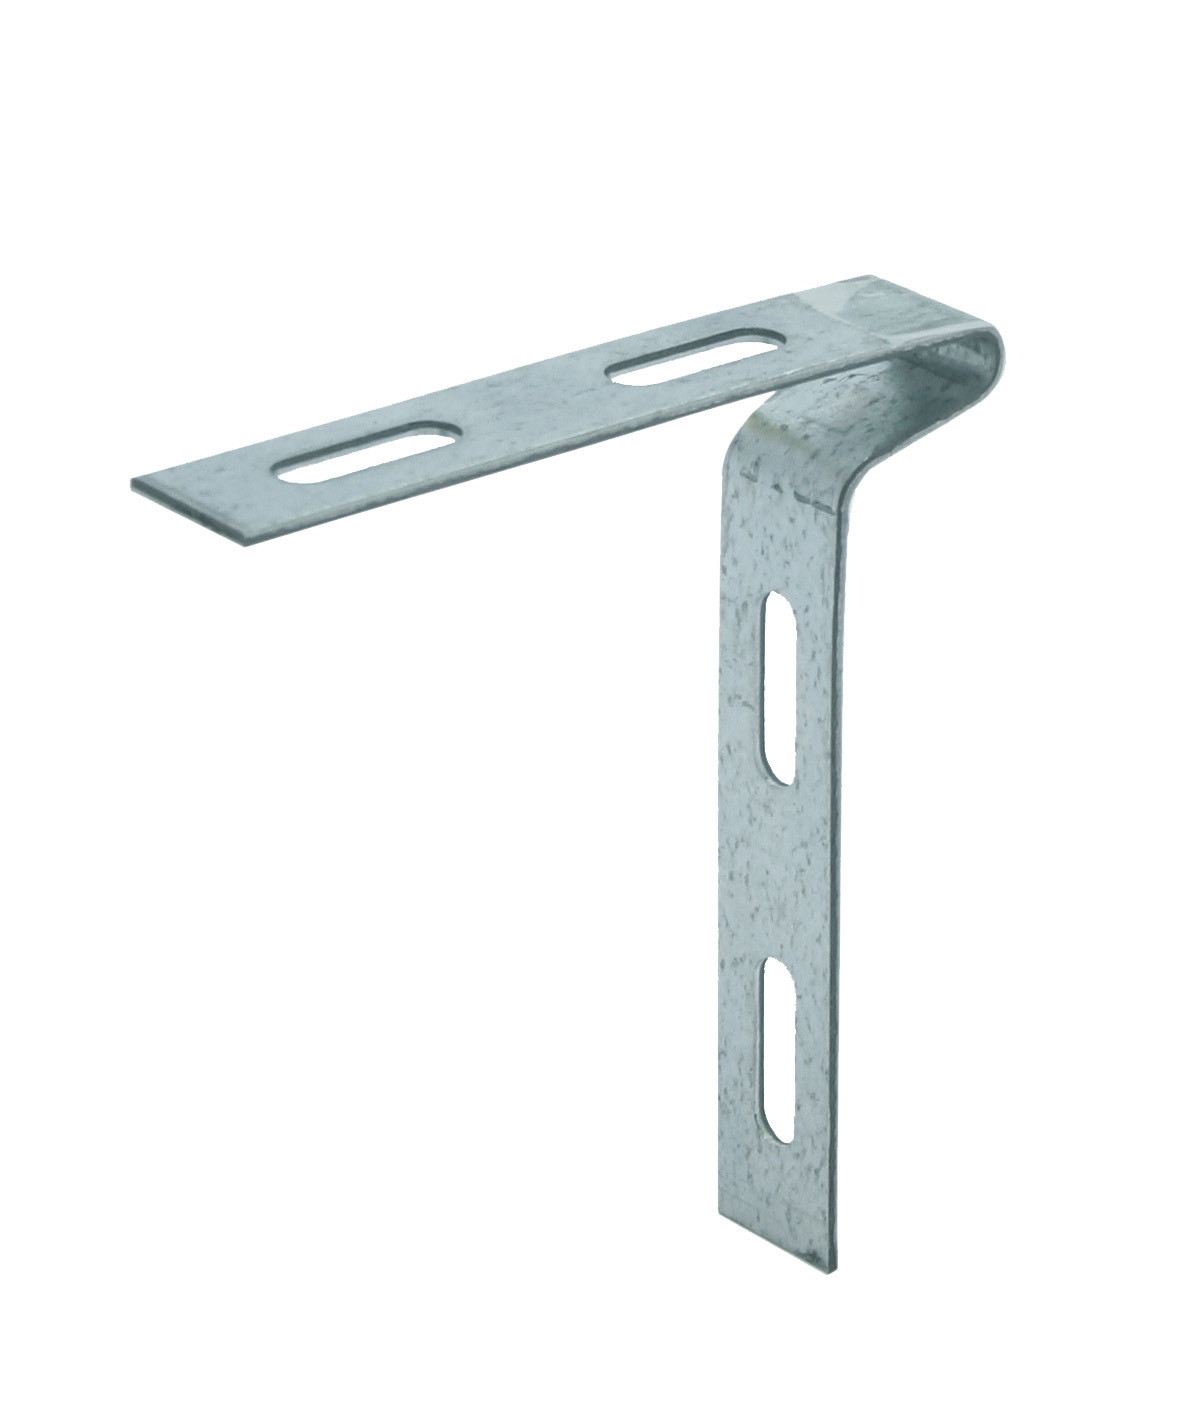 Ceiling spring anchor 110x115 20x2 SV